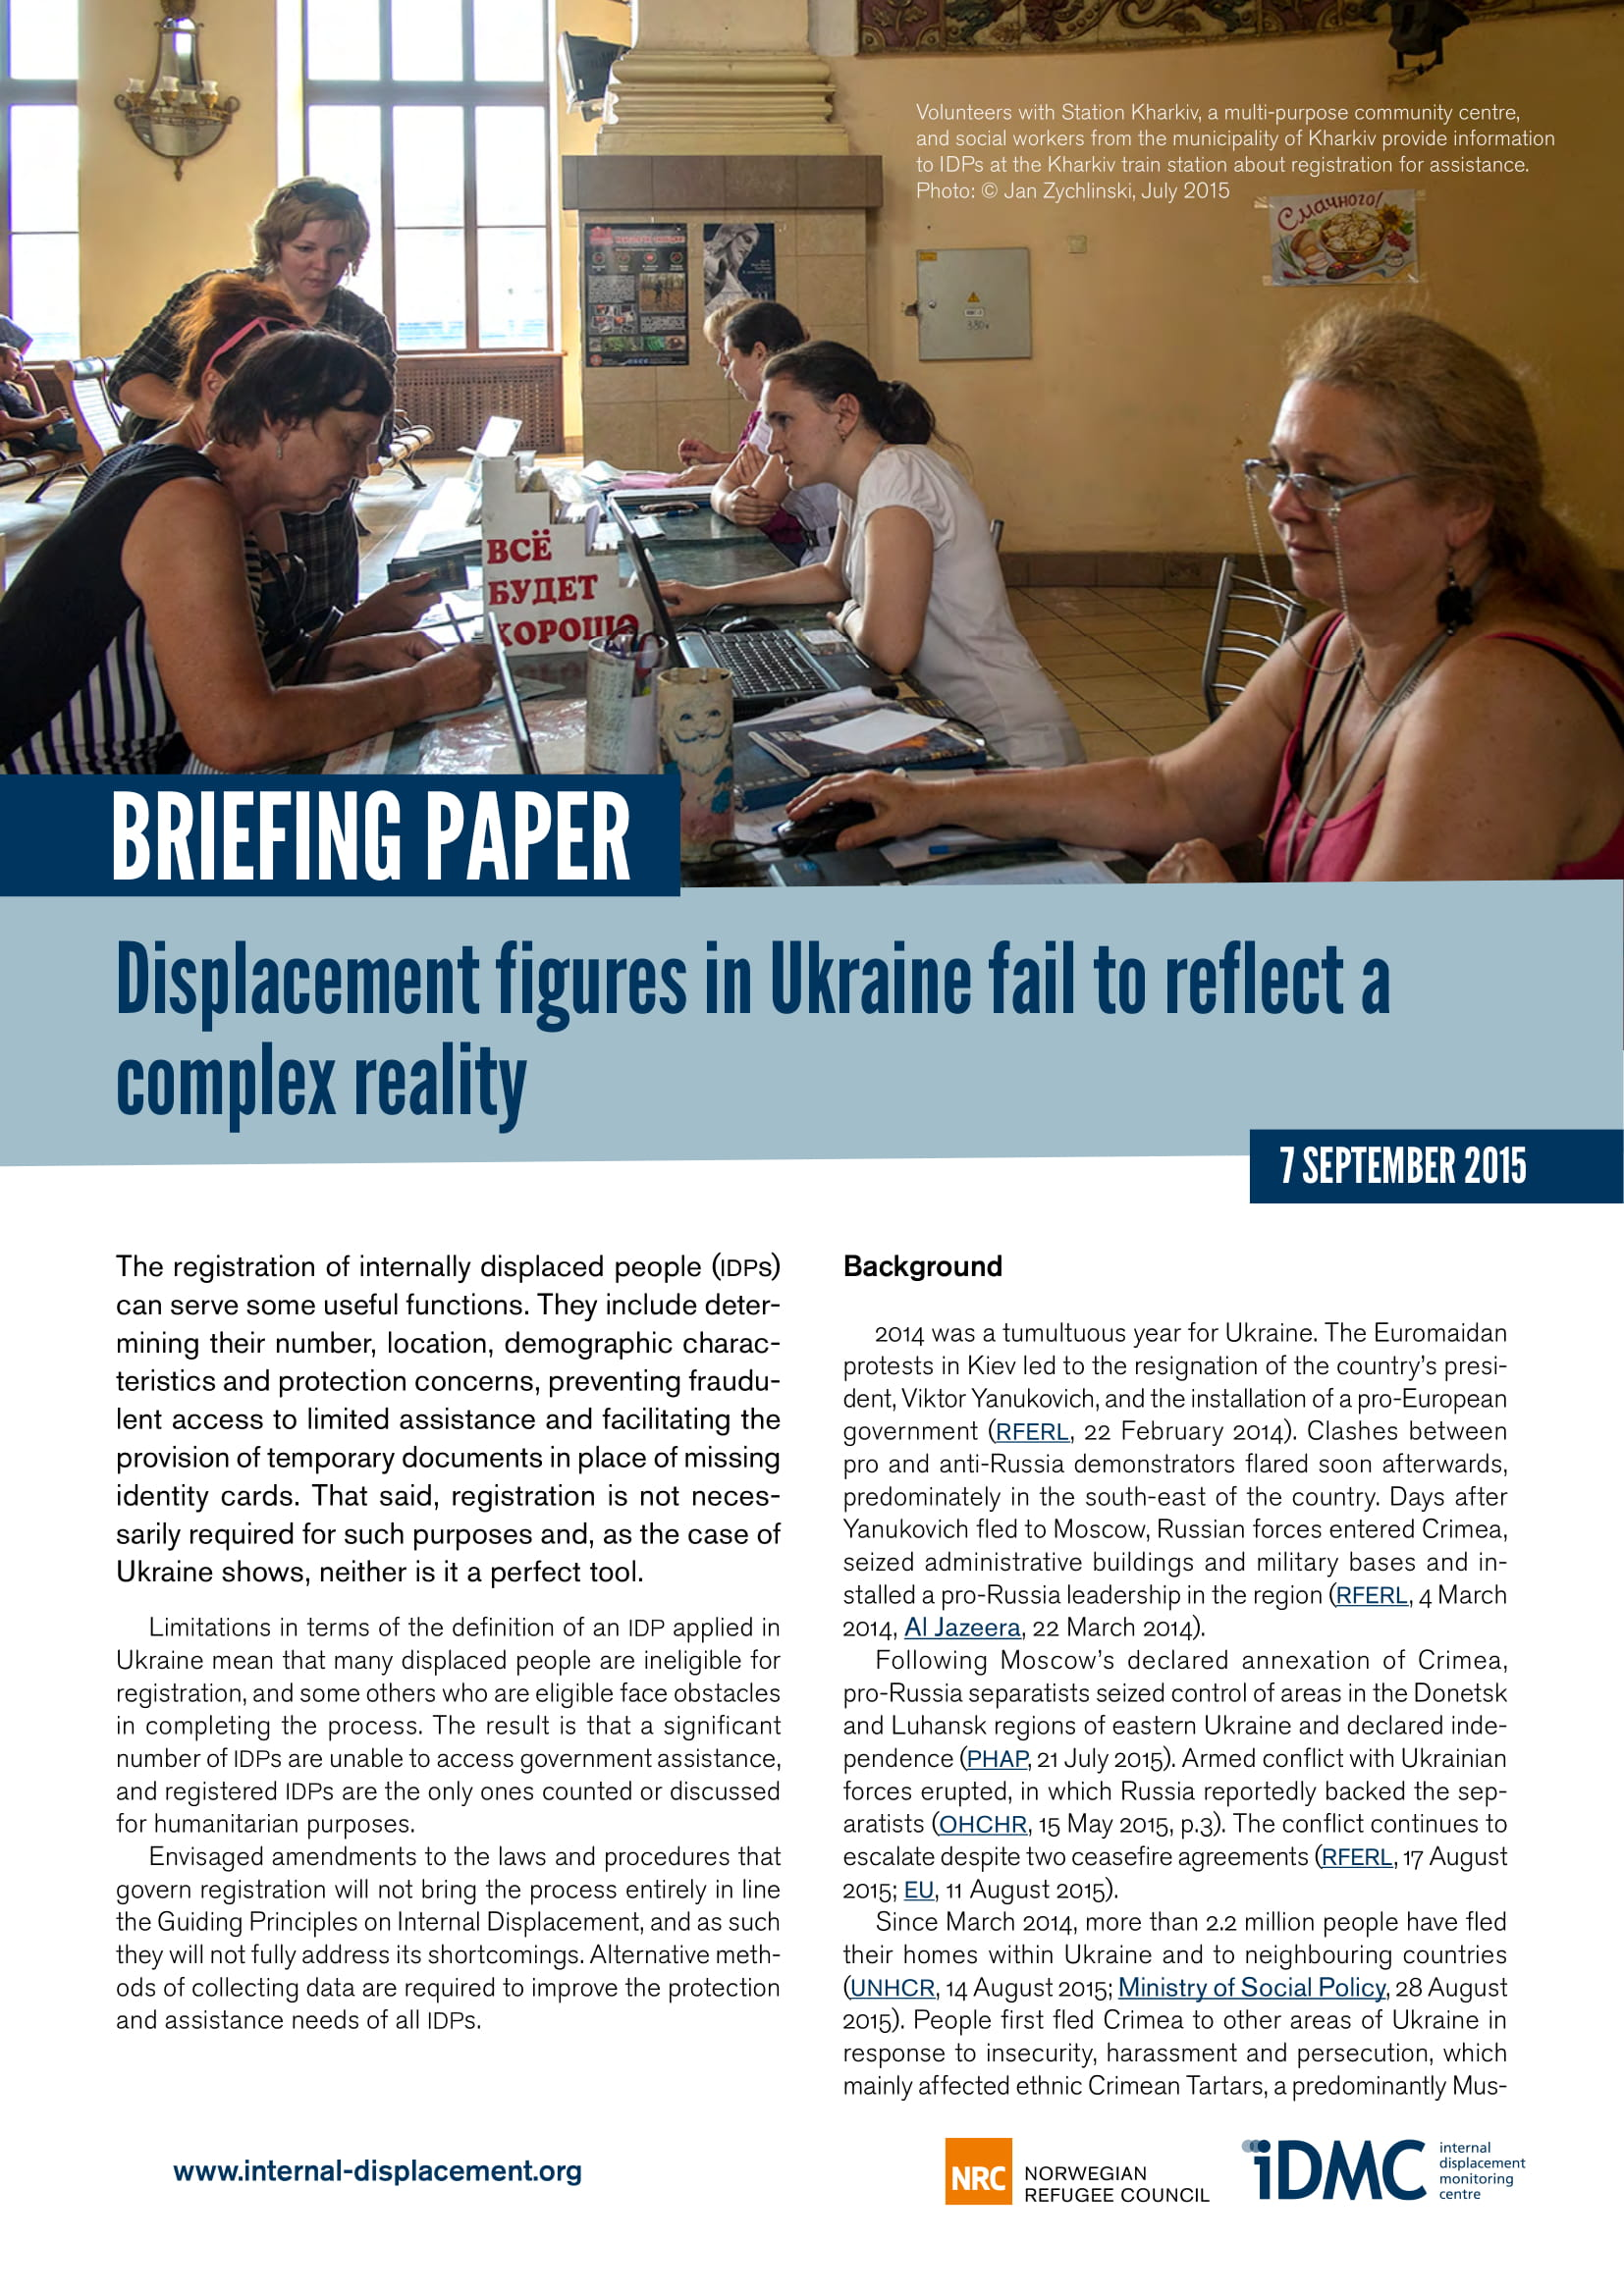 Displacement figures in Ukraine fail to reflect a complex reality